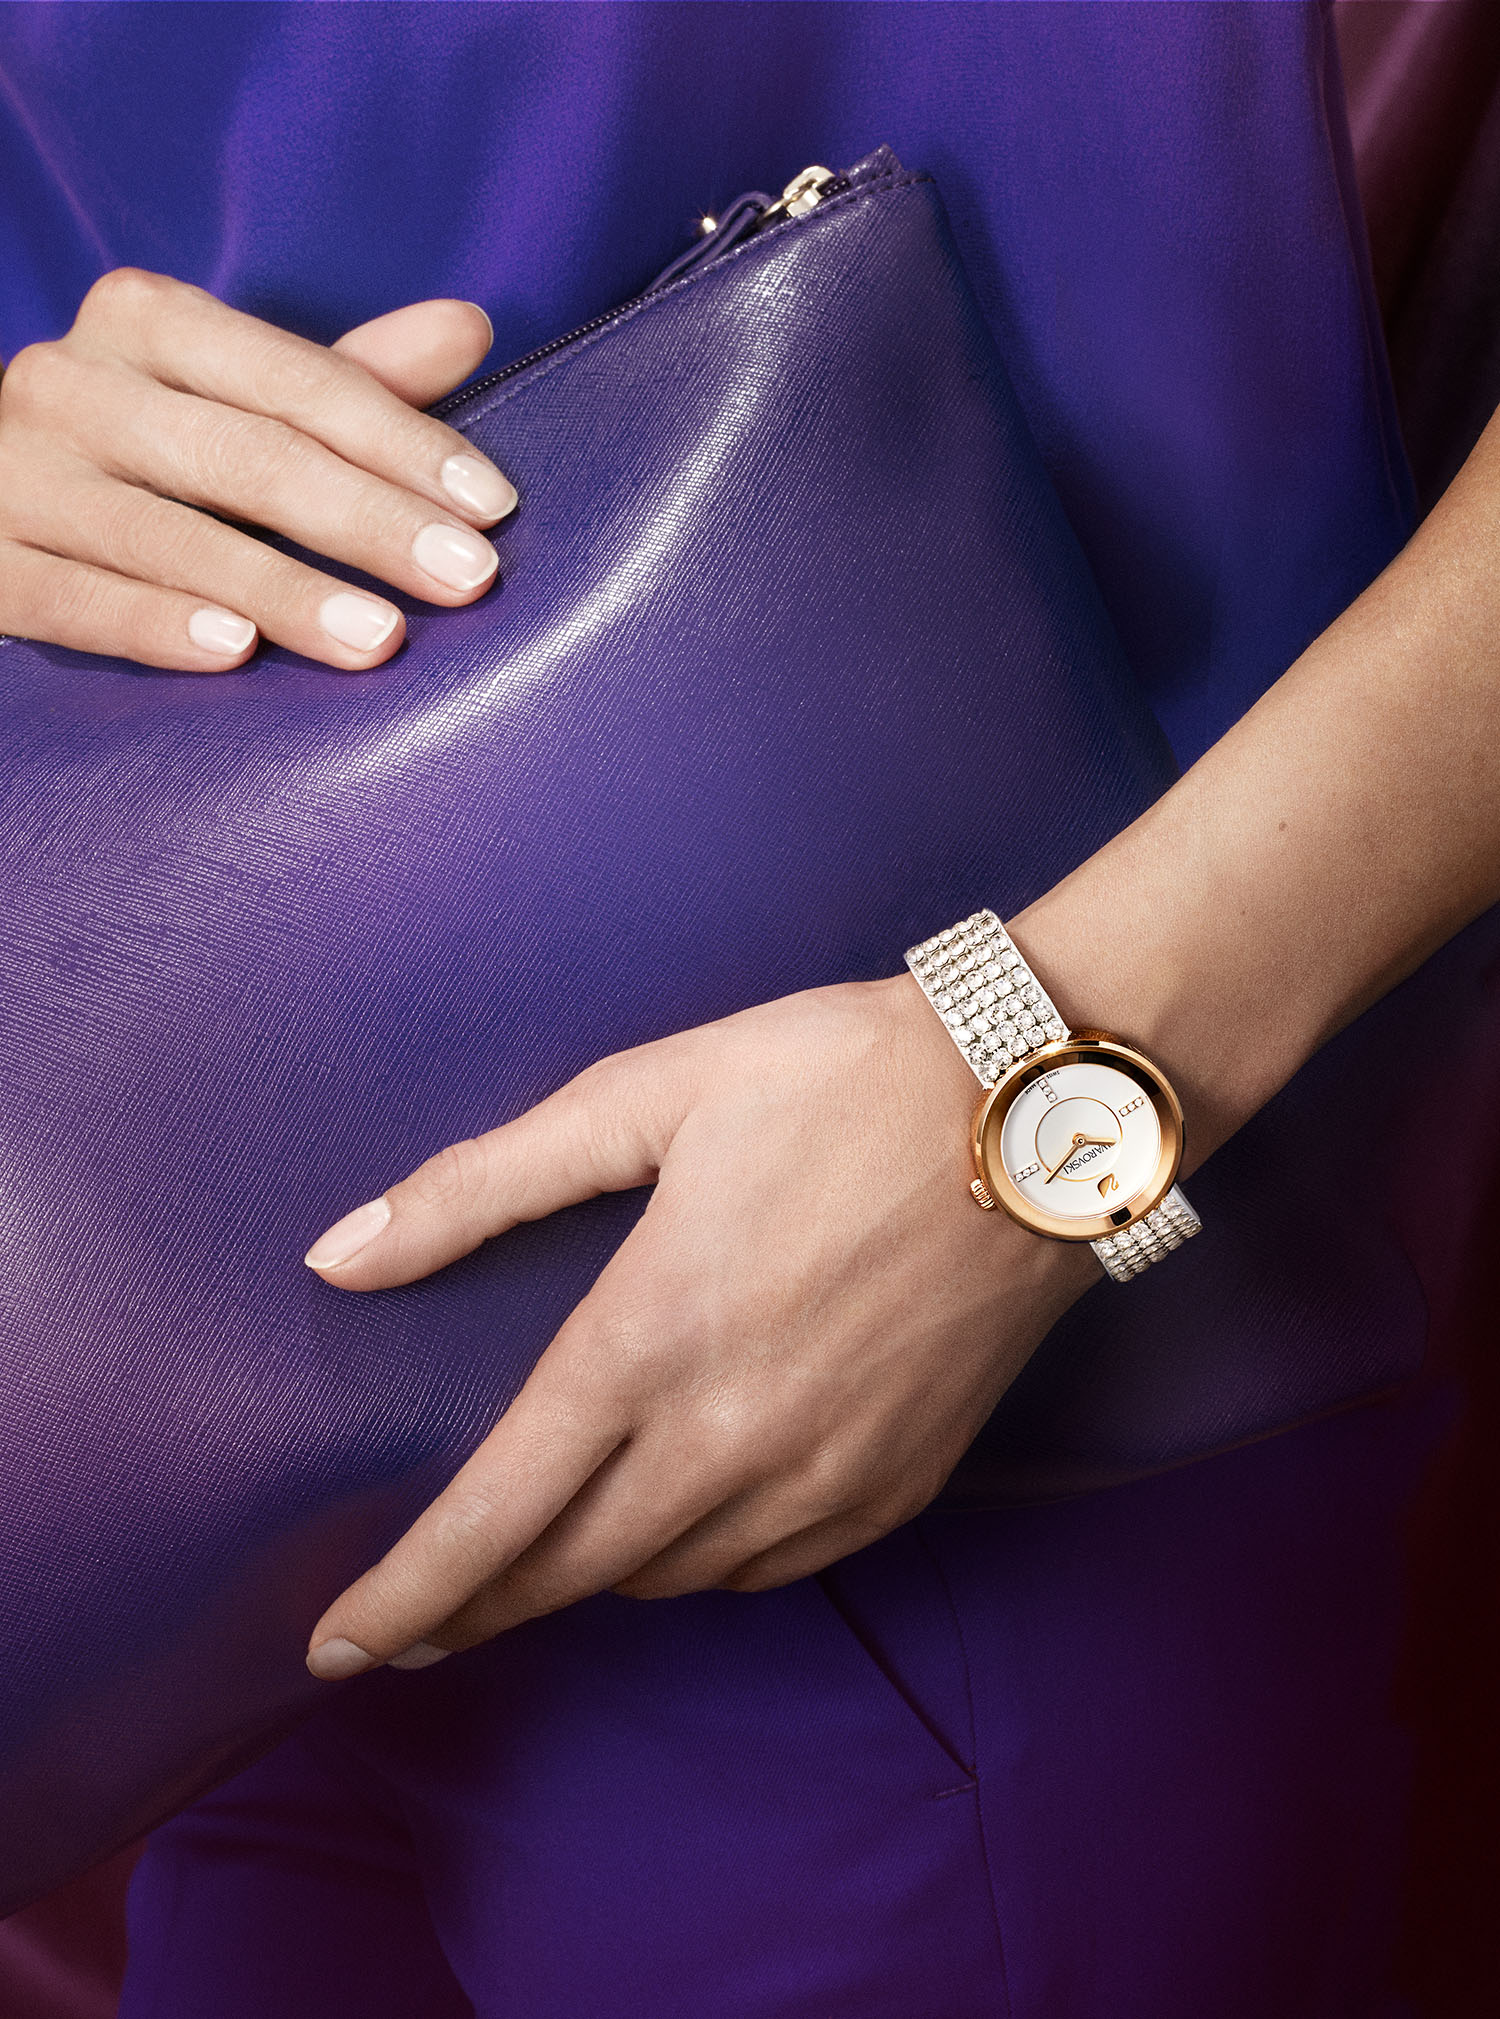 Christoph Sagel - Swarovski Watches Catalogue, In the Headroom